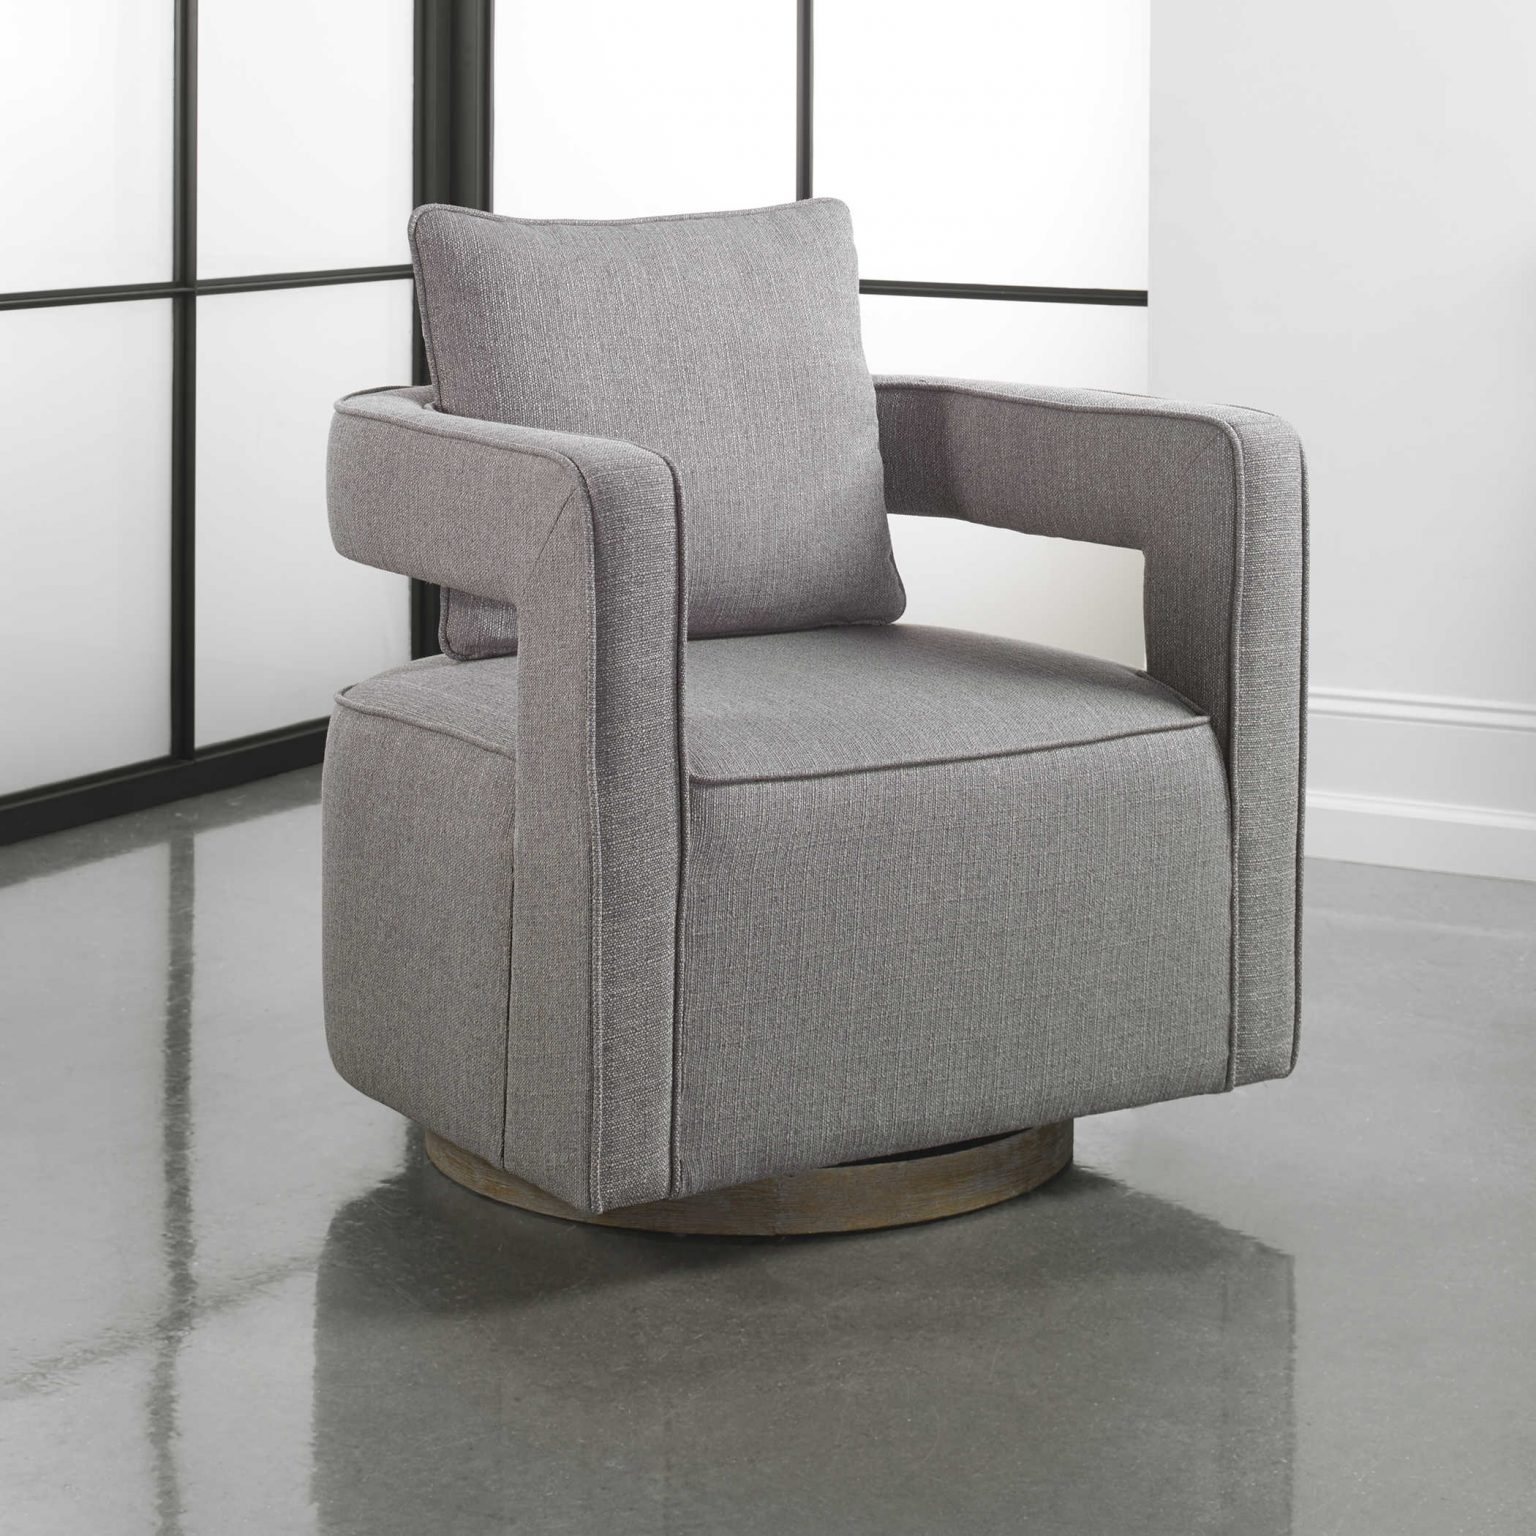 Nostalgic grey swivel chair inspired by the 1970's would look fantastic in a granny chic living room or office